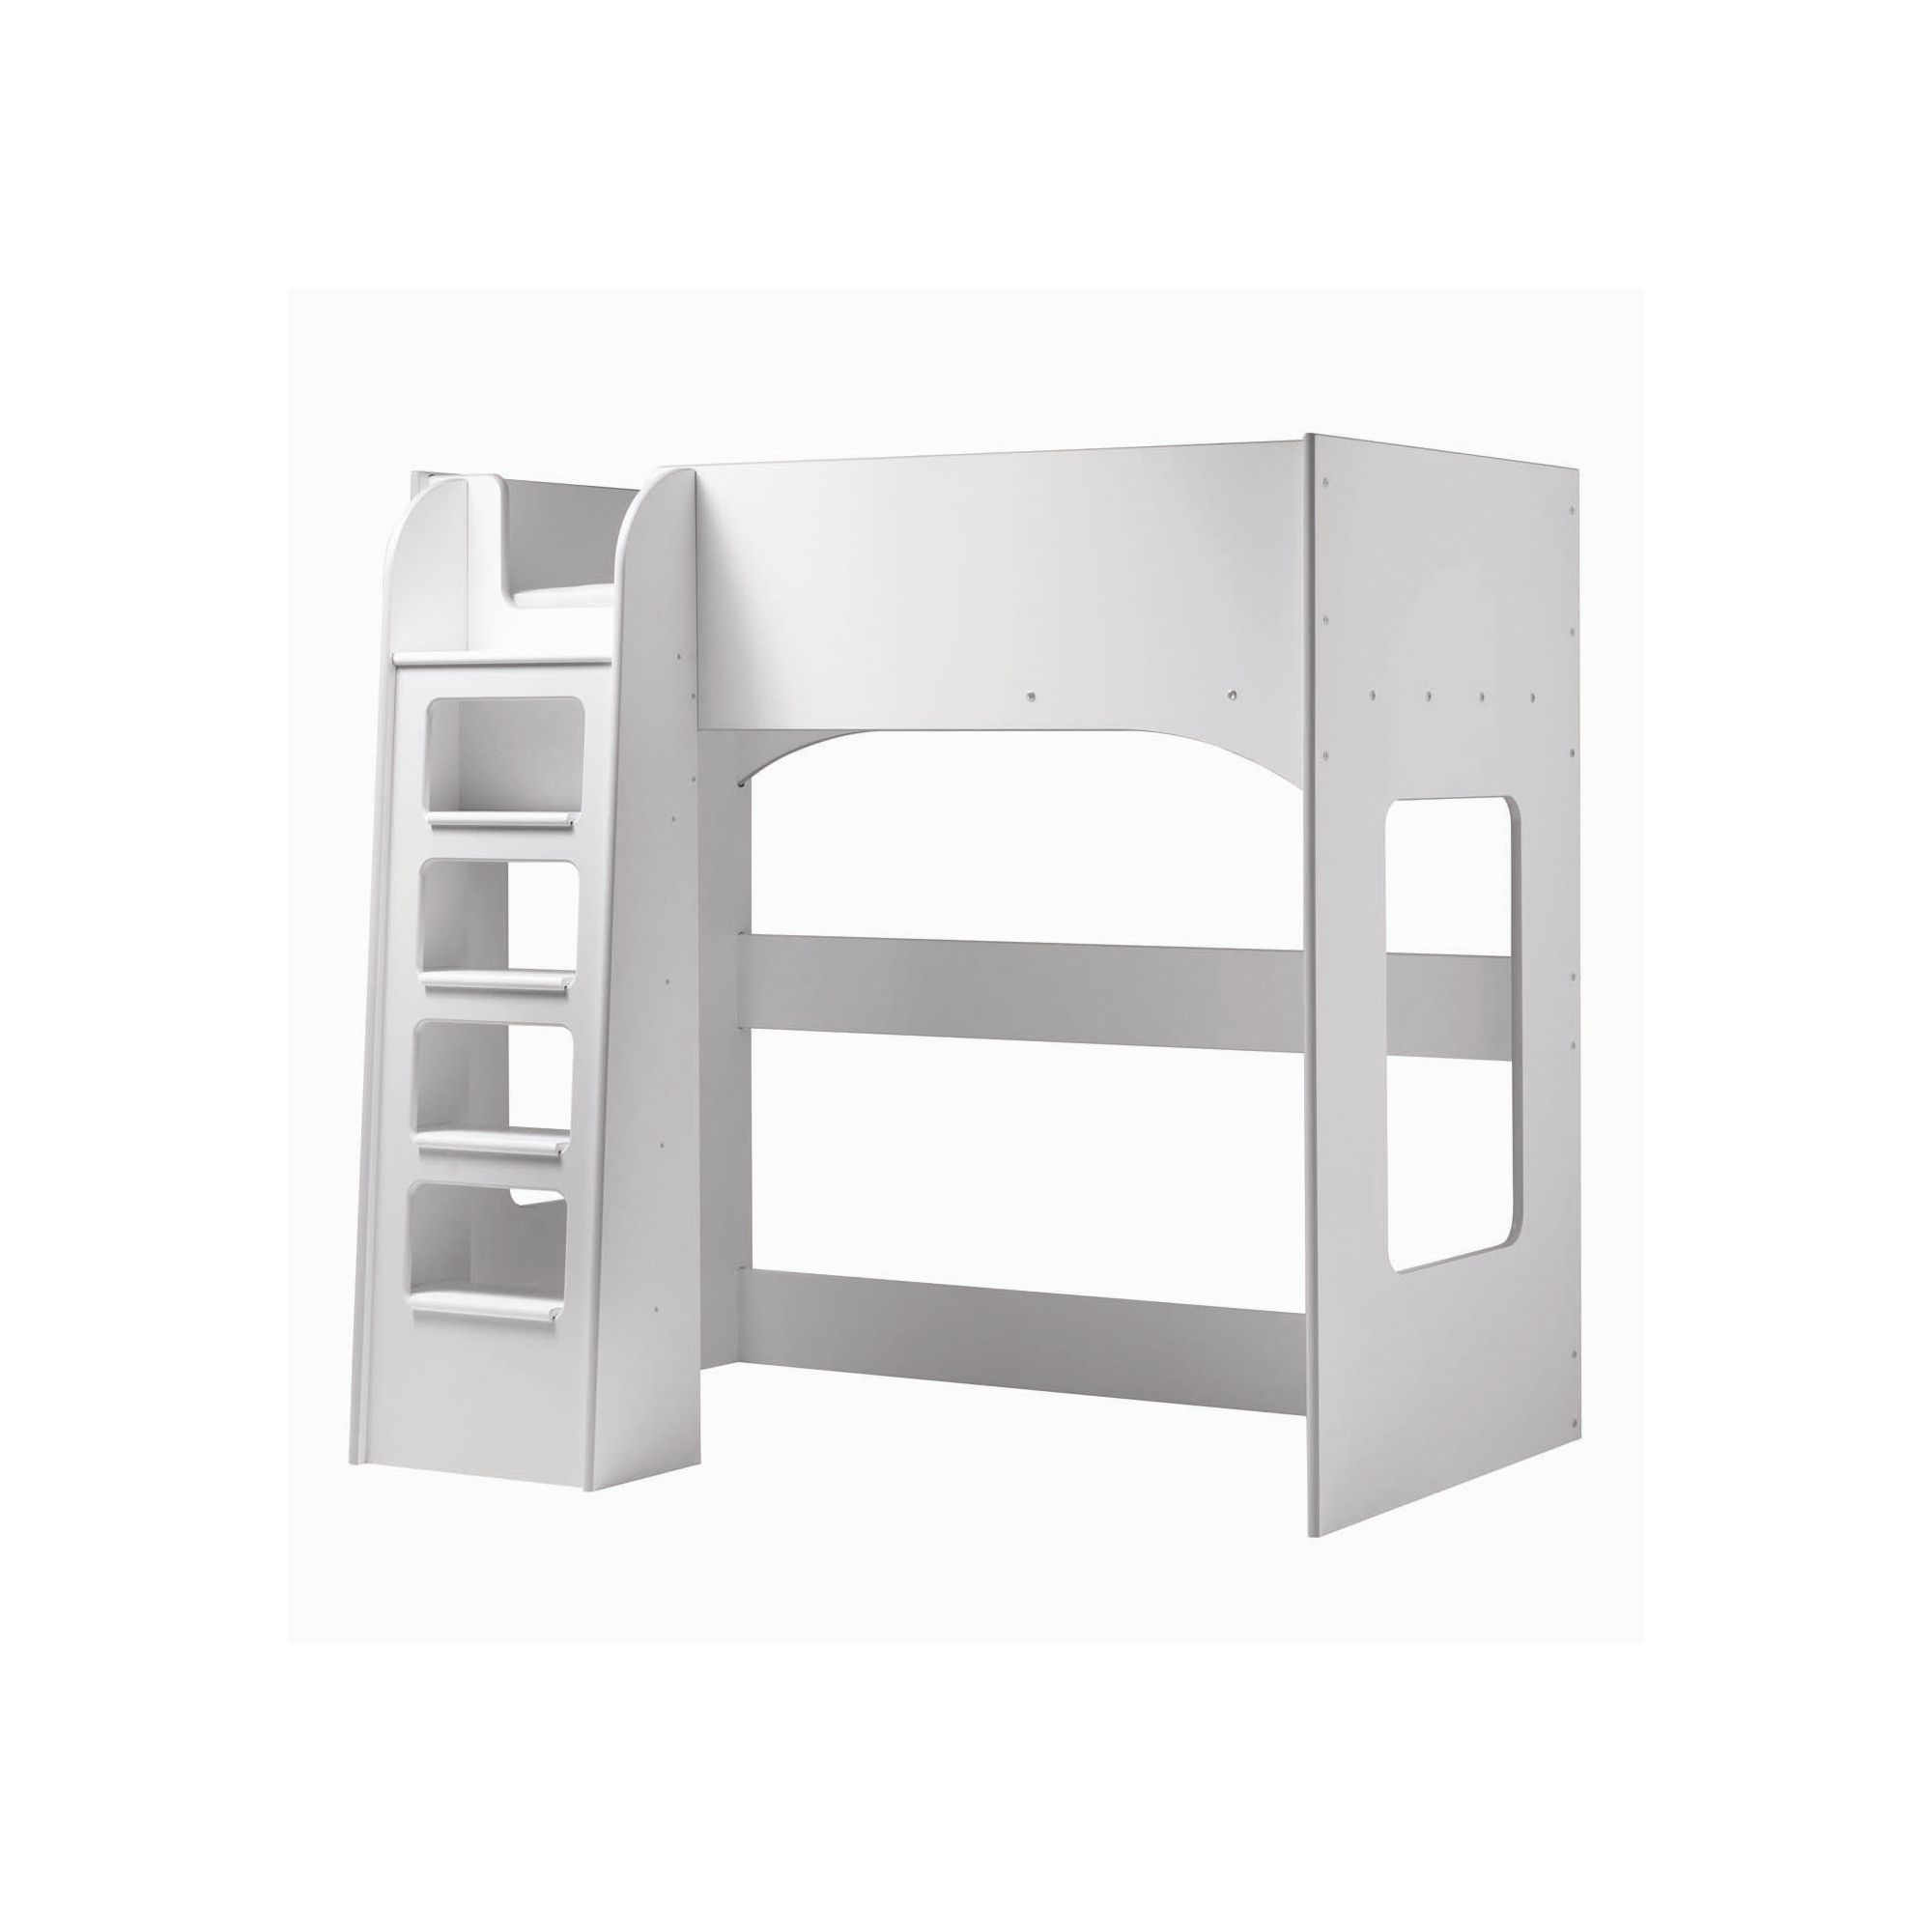 Caxton MyPod Cabin Single Bed Frame at Tesco Direct